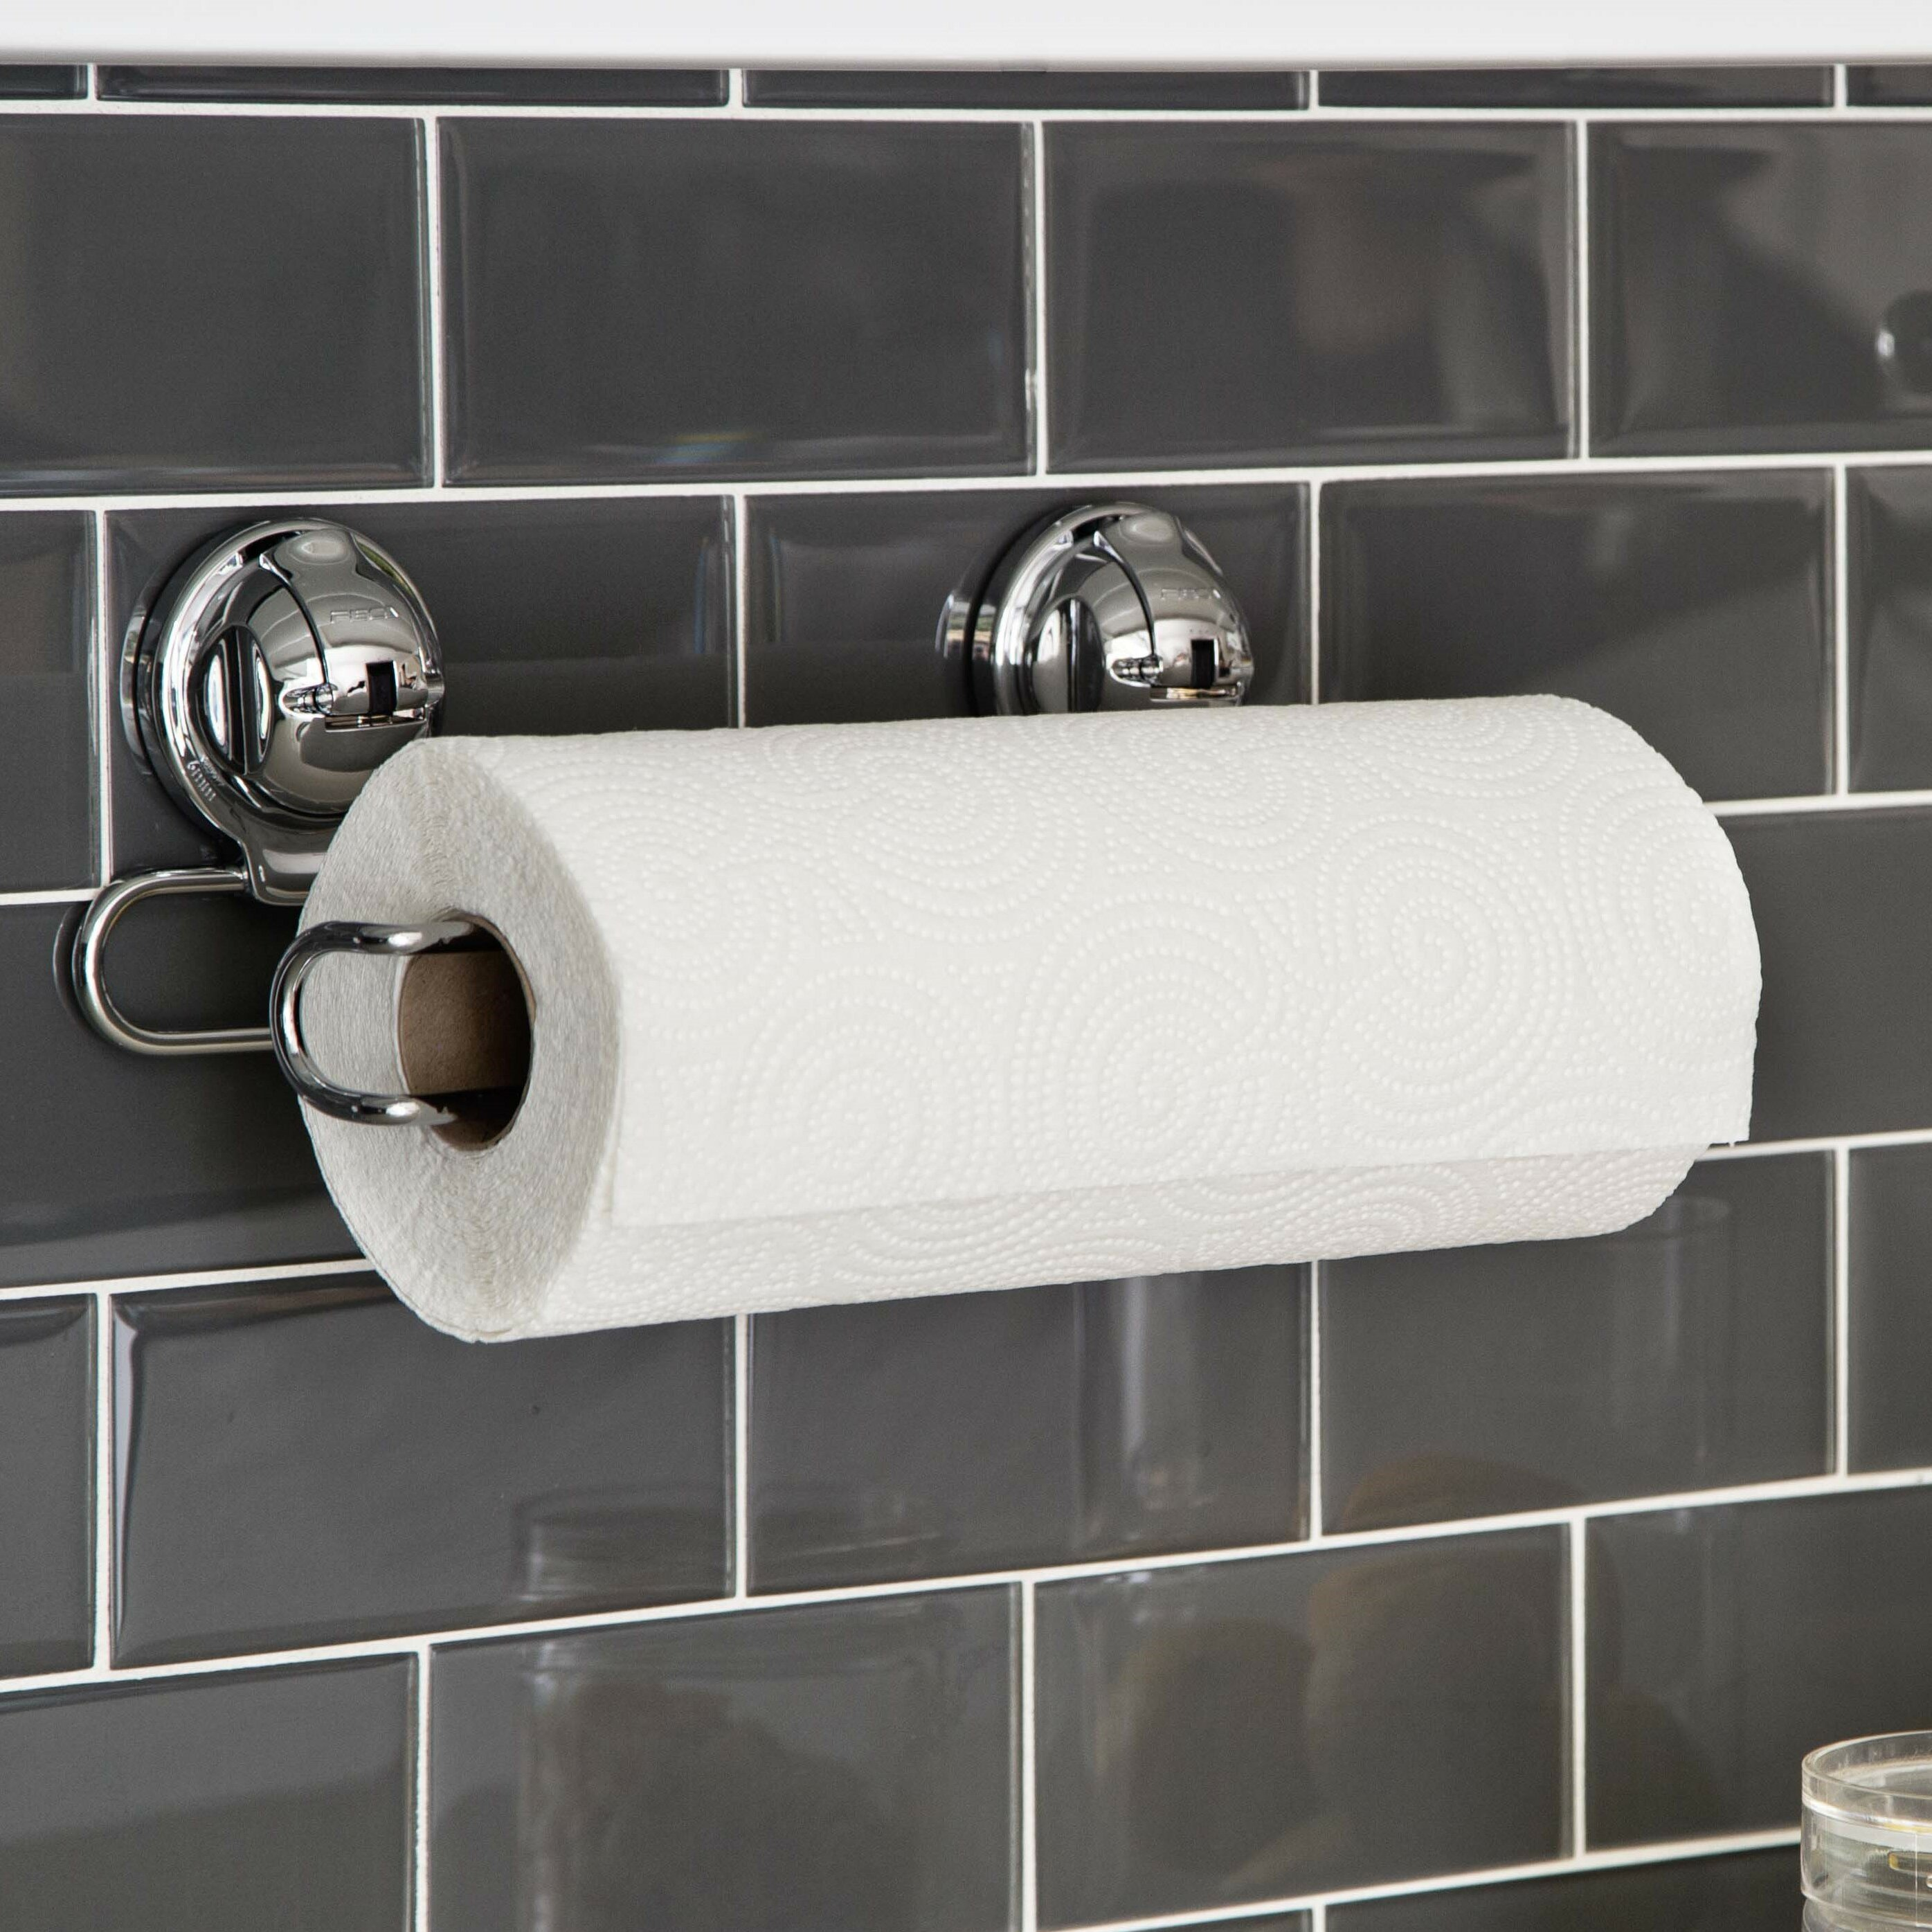 Stainless Steel Wall Mount Paper Towel Holder With Ful Suction Cup